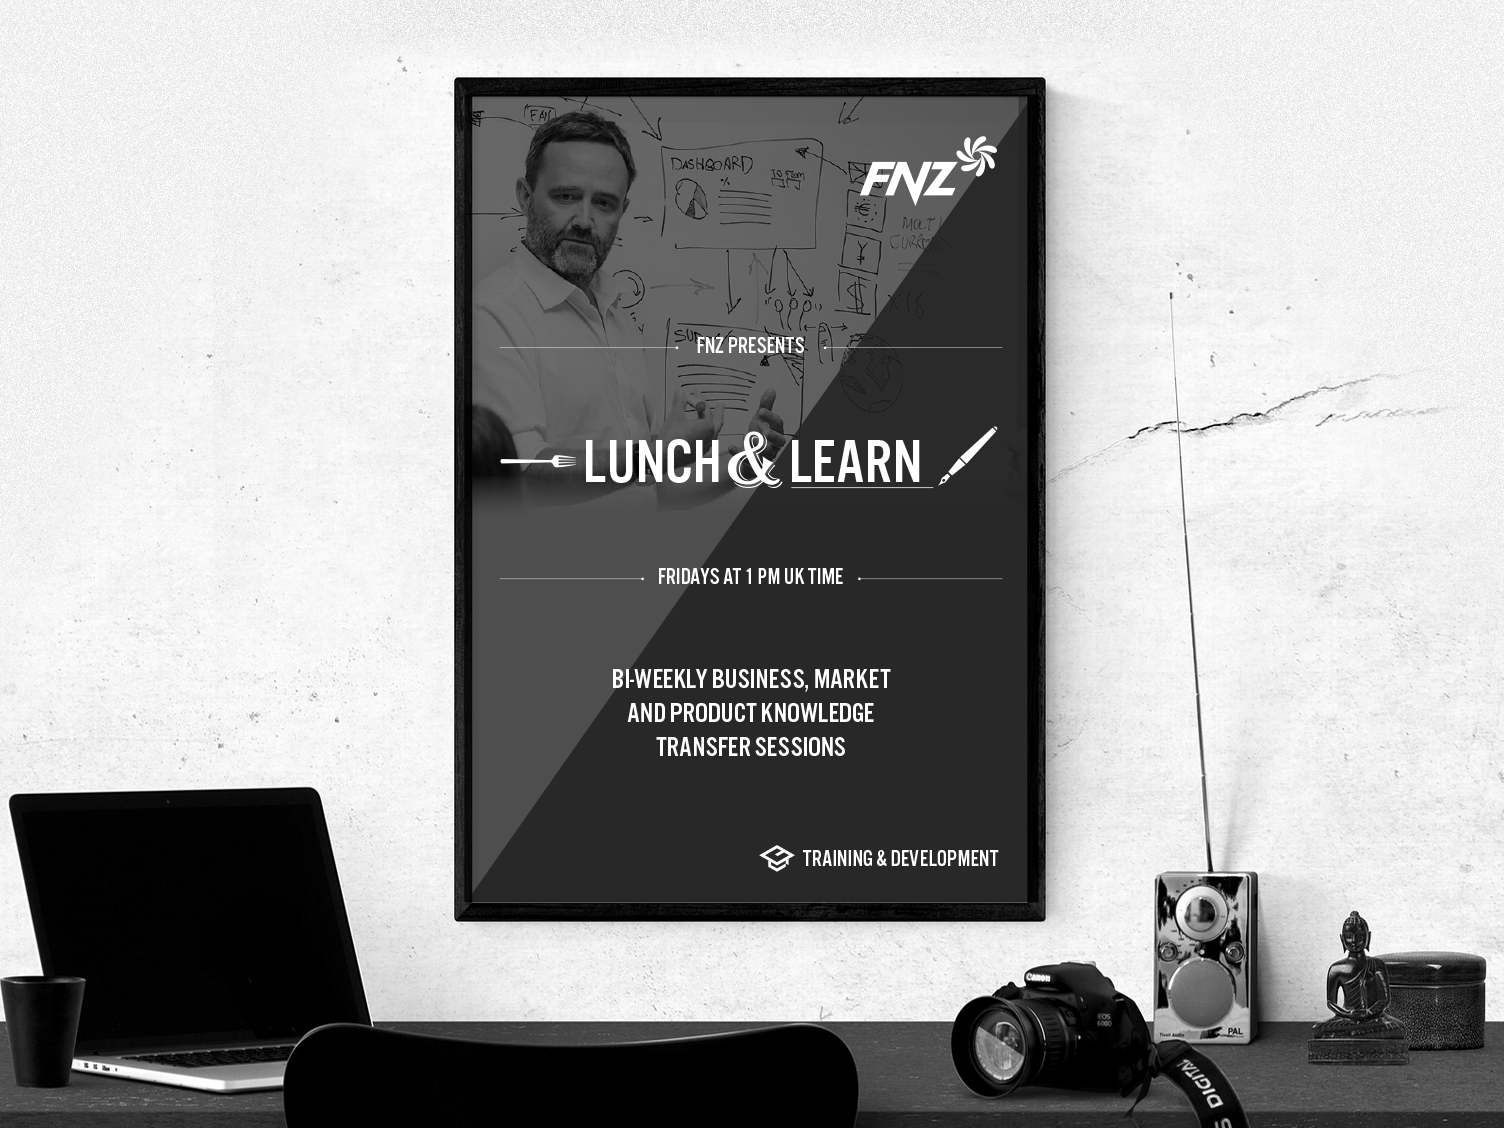 Lunch & Learn Poster poster